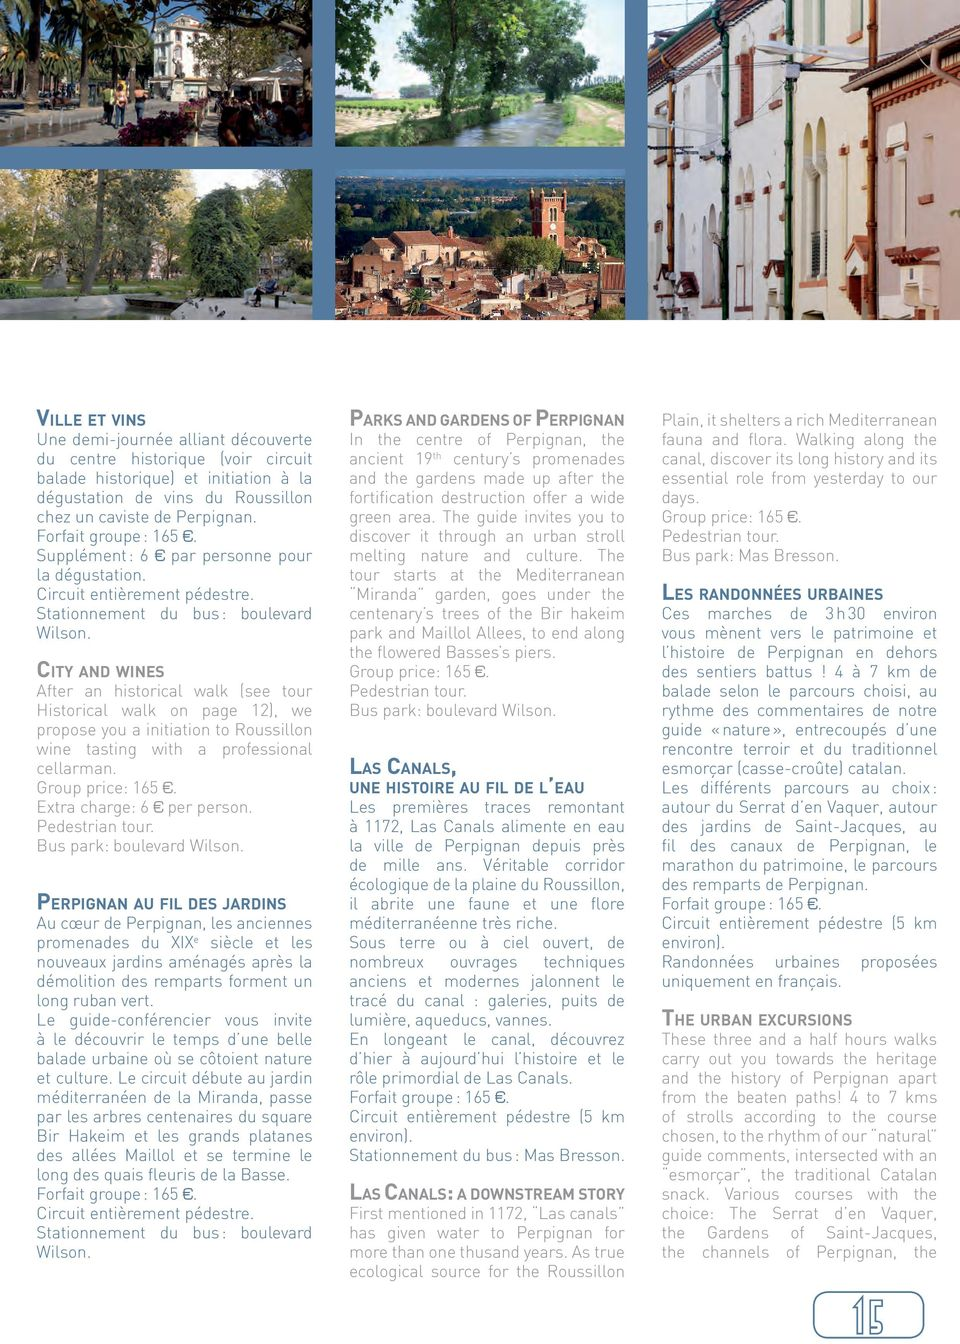 City and wines After an historical walk (see tour Historical walk on page 12), we propose you a initiation to Roussillon wine tasting with a professional cellarman. Group price: 165.